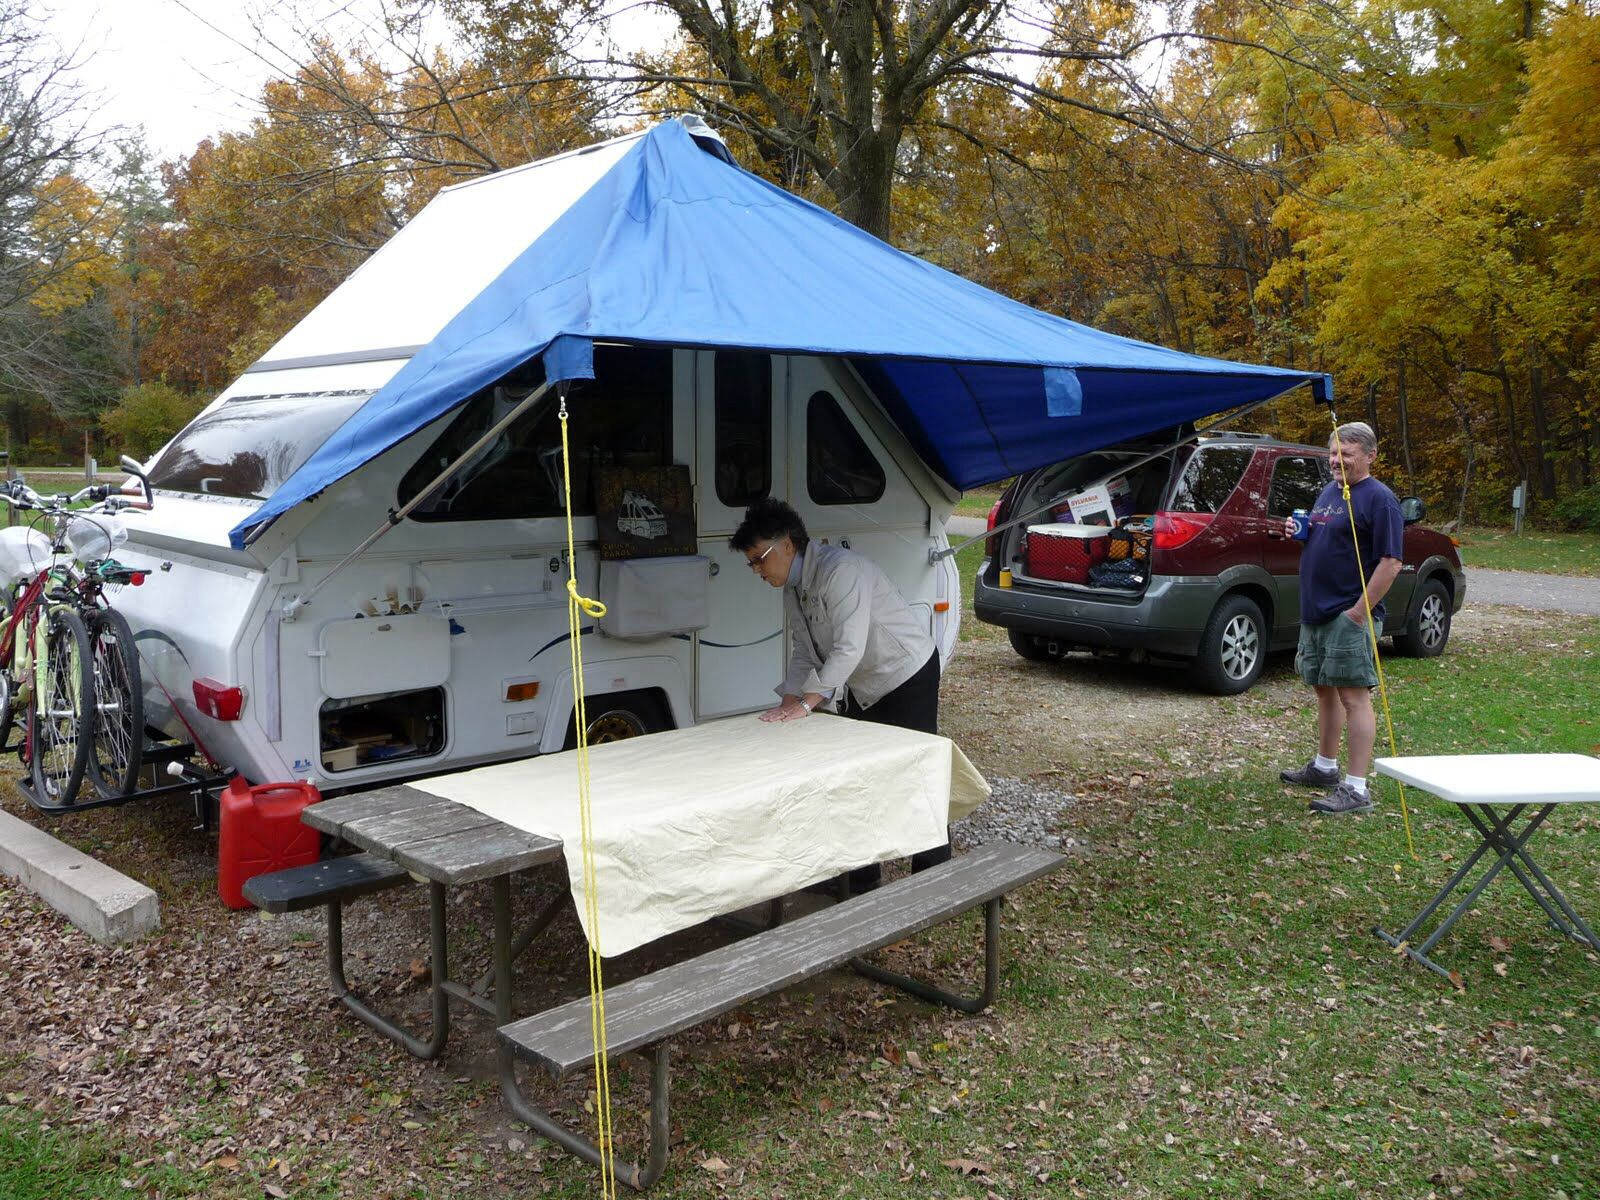 Quick setup rear awning for shaded seating and outside kitchen modified coleman awning from fabric sided pop up type camper s